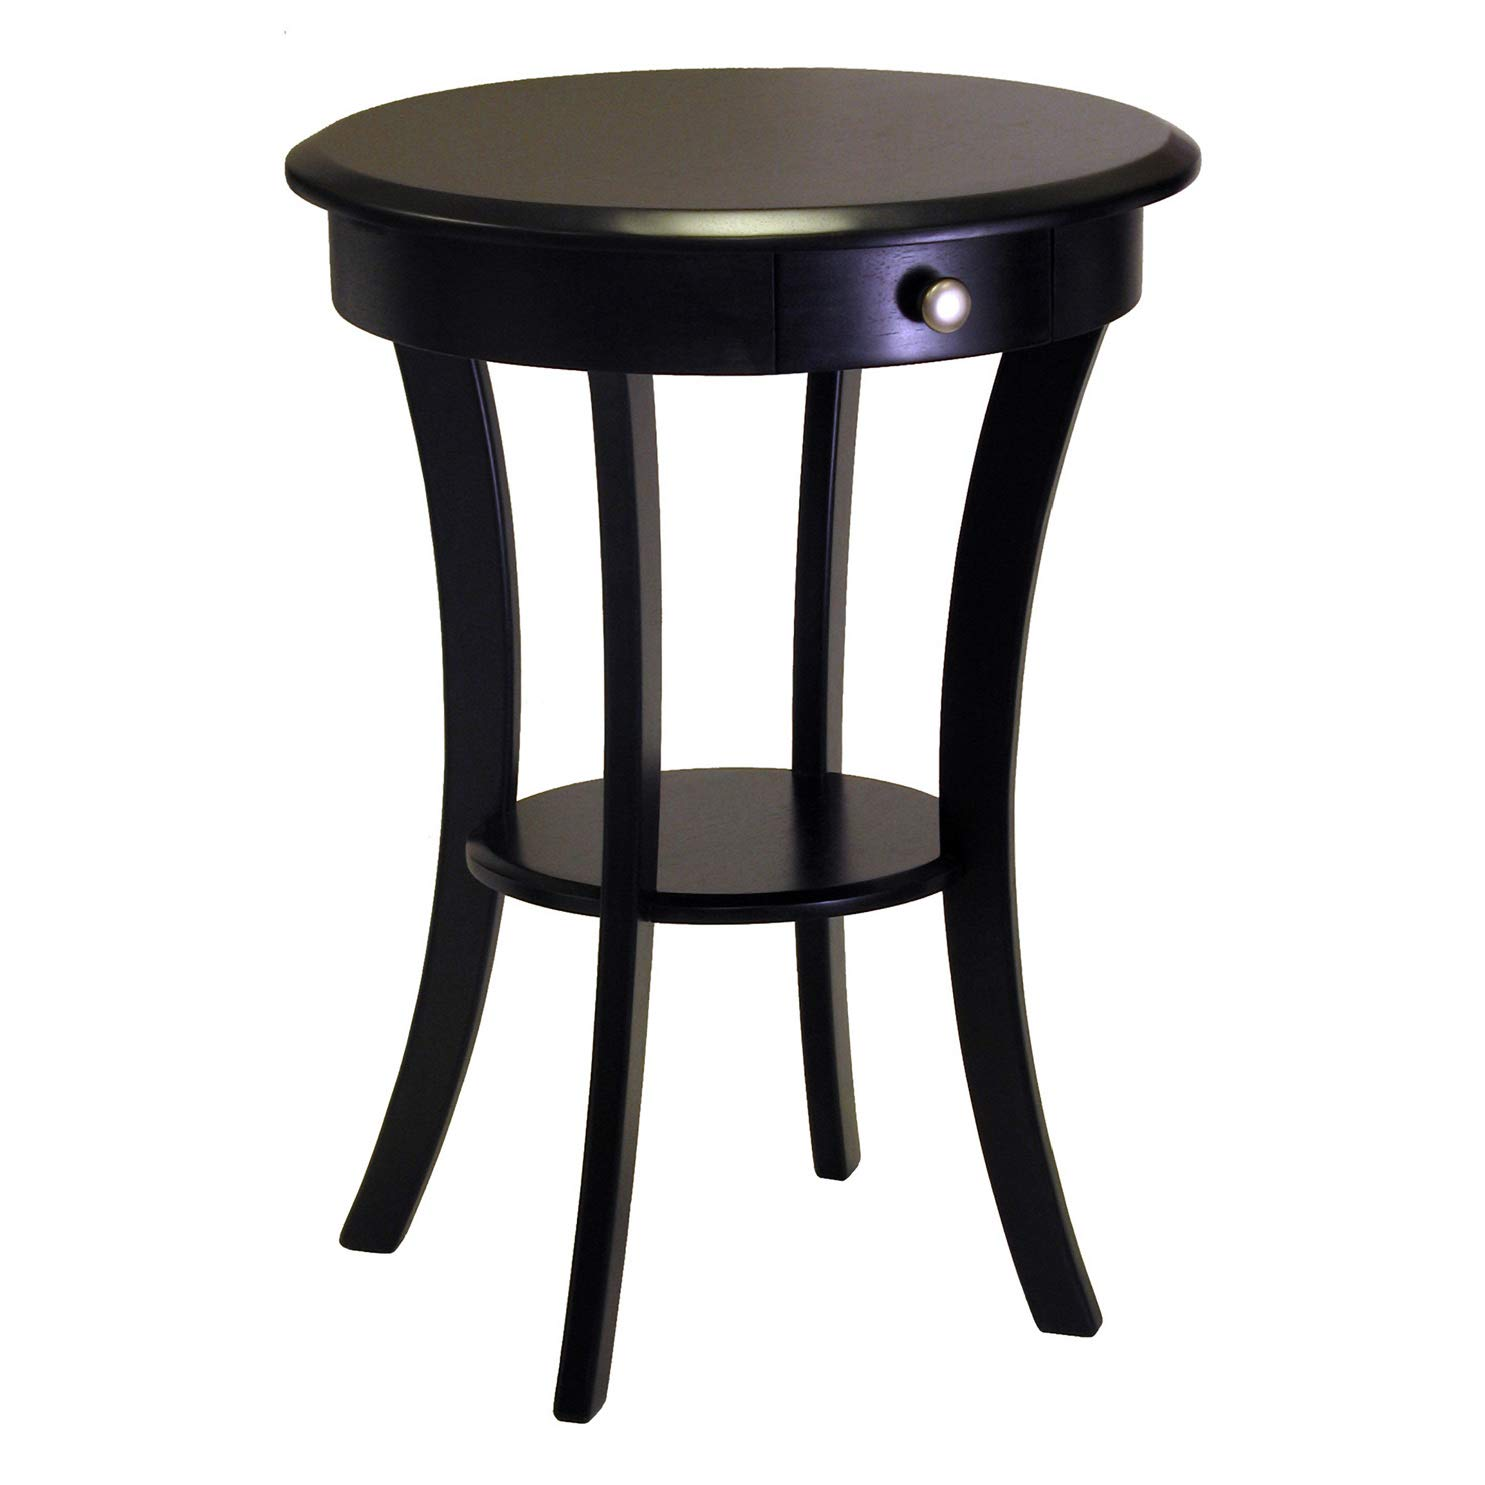 winsome wood sasha accent table black kitchen with drawer dining shaker end ashley furniture drop leaf inch square vinyl tablecloth lucite grill brush white living room ideas